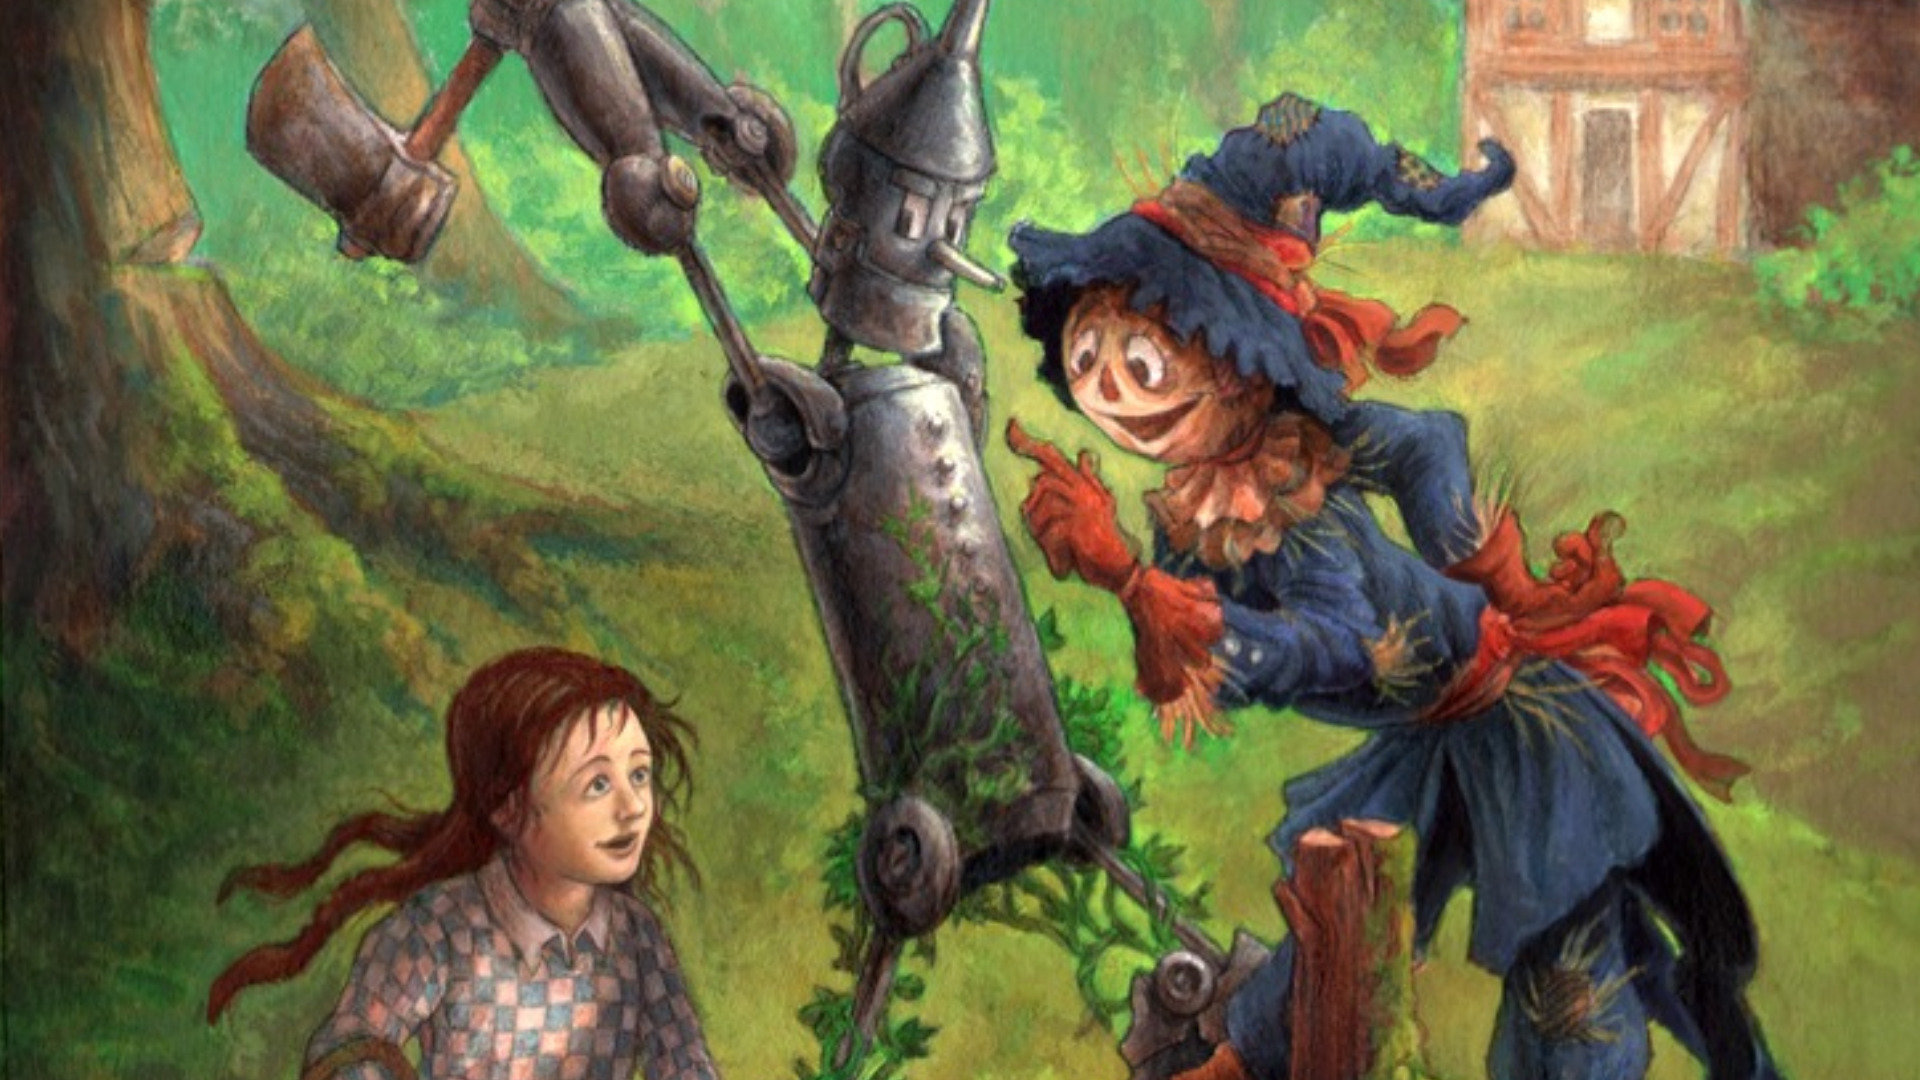 The Wizard Of Oz Wallpapers 1920x1080 Full Hd 1080p Desktop